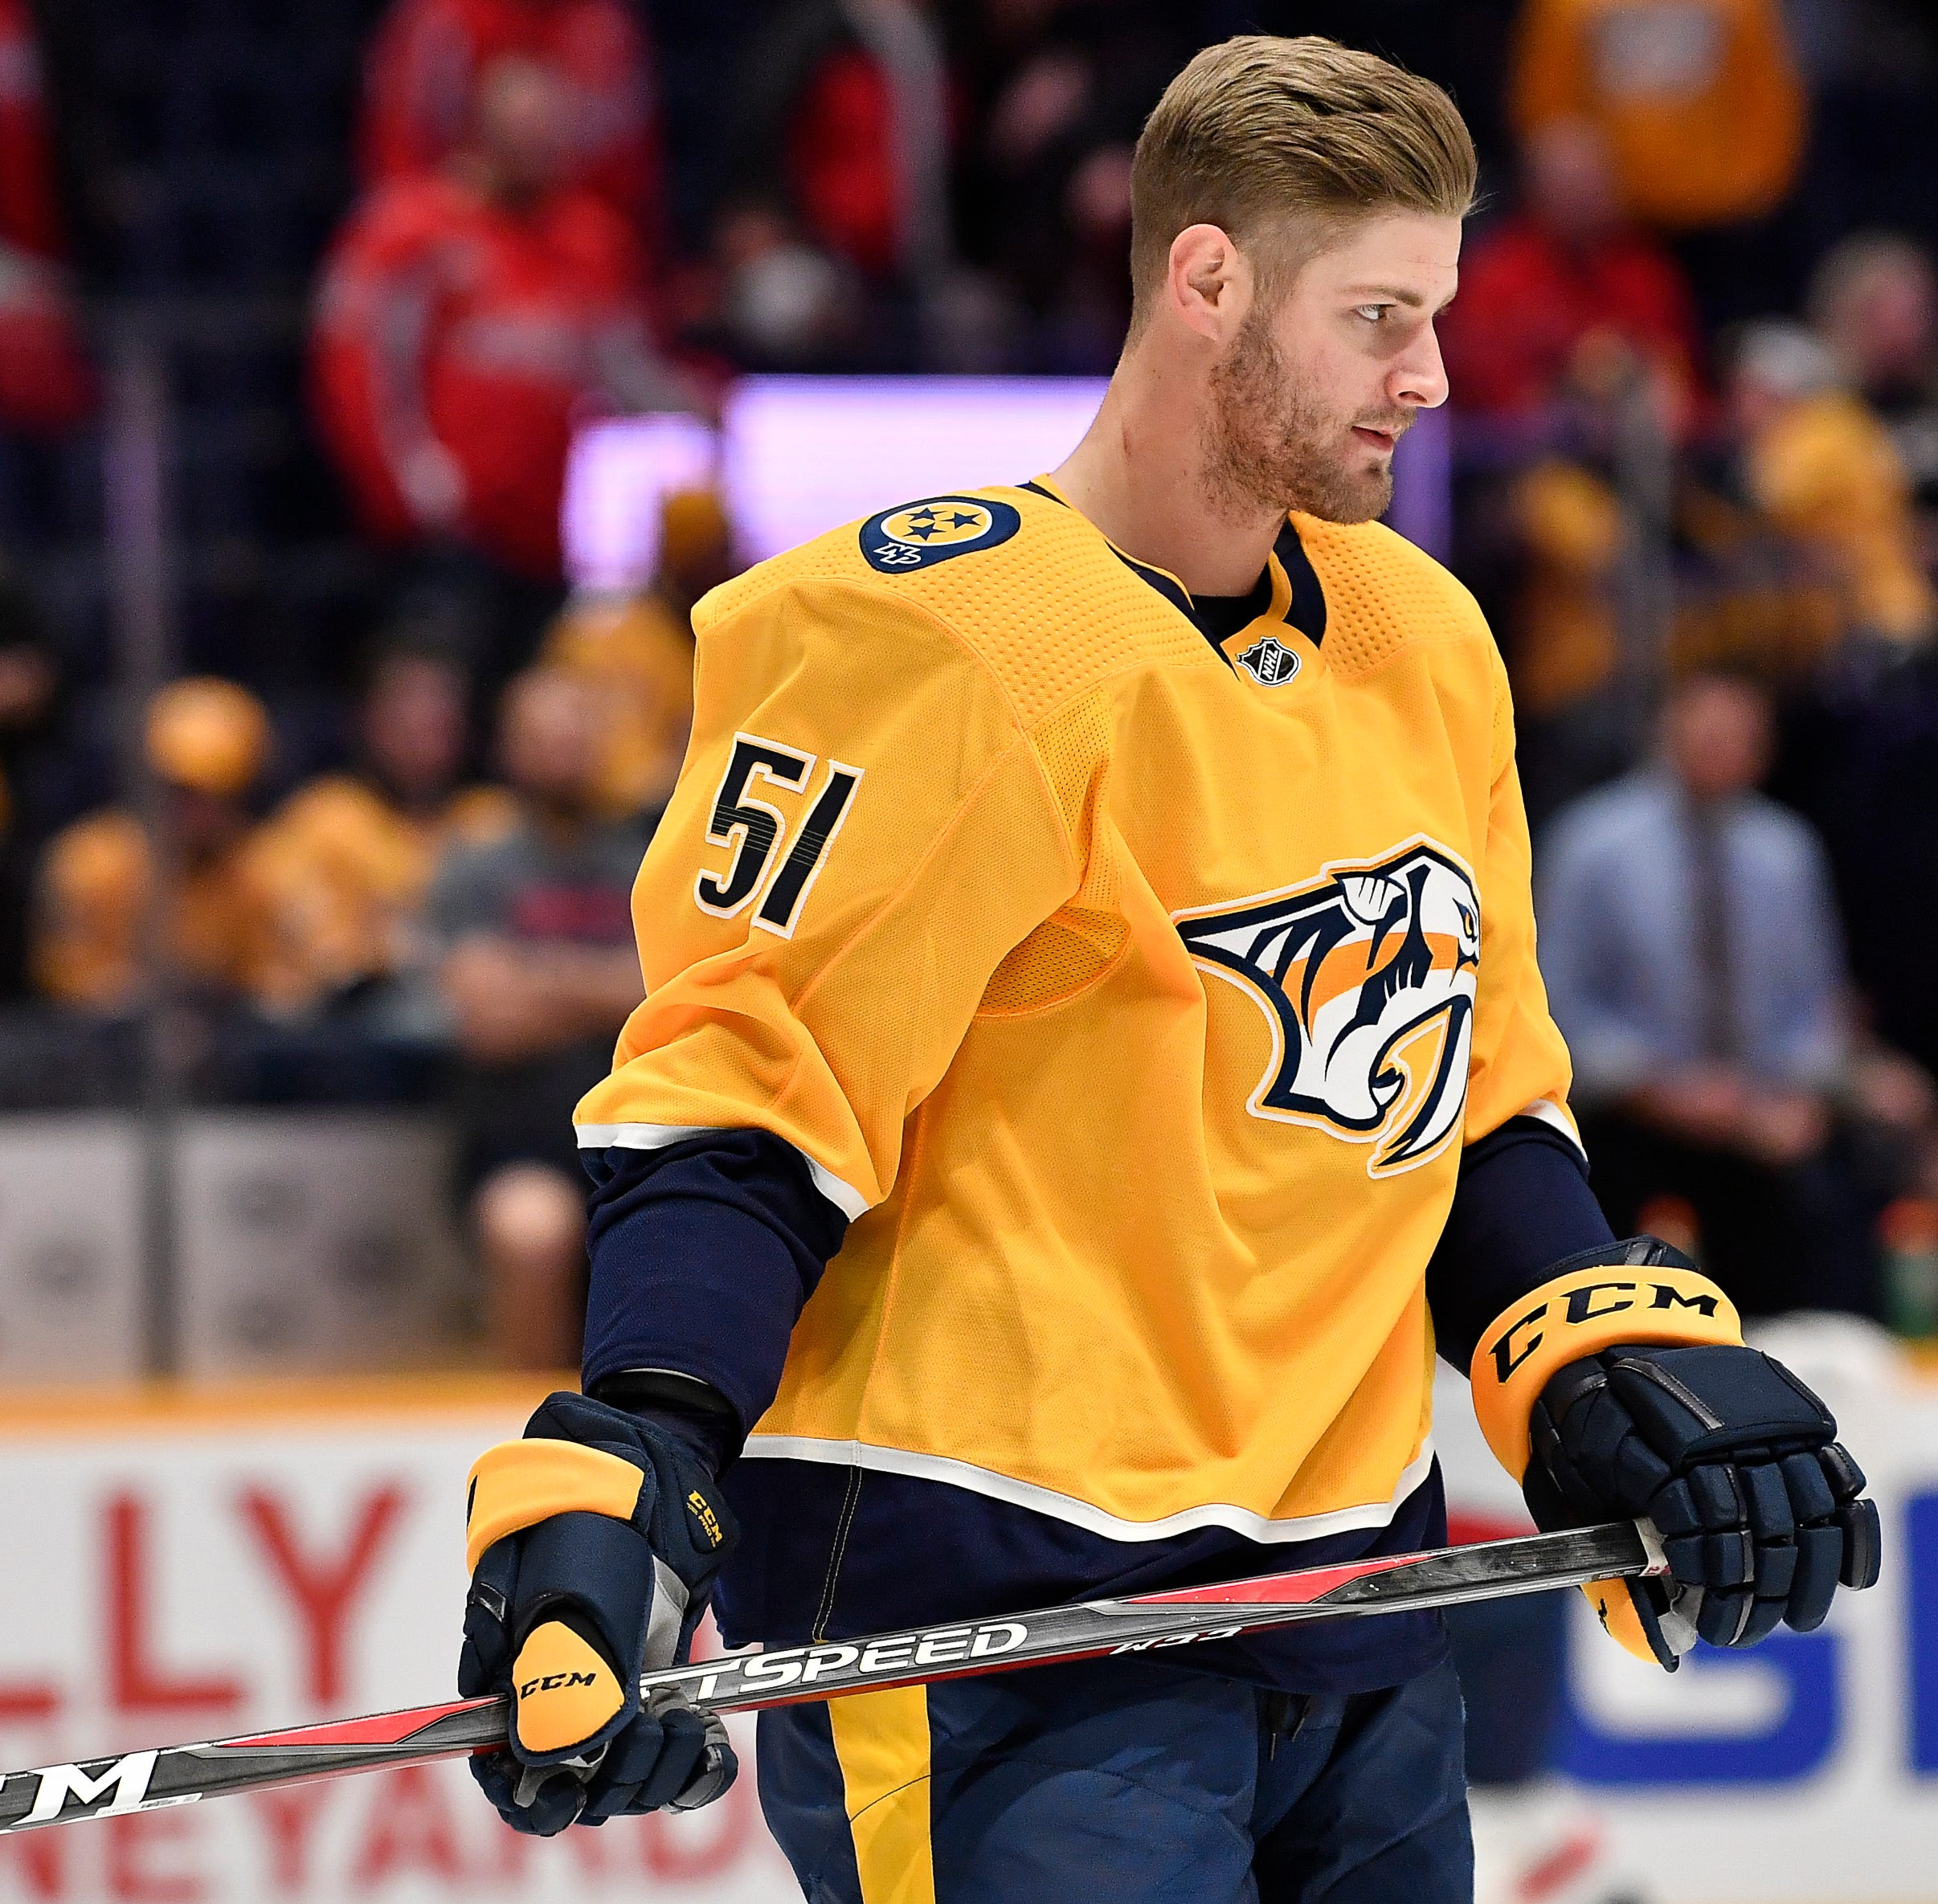 6 things to consider about Predators' Austin Watson's reinstatement from indefinite suspension